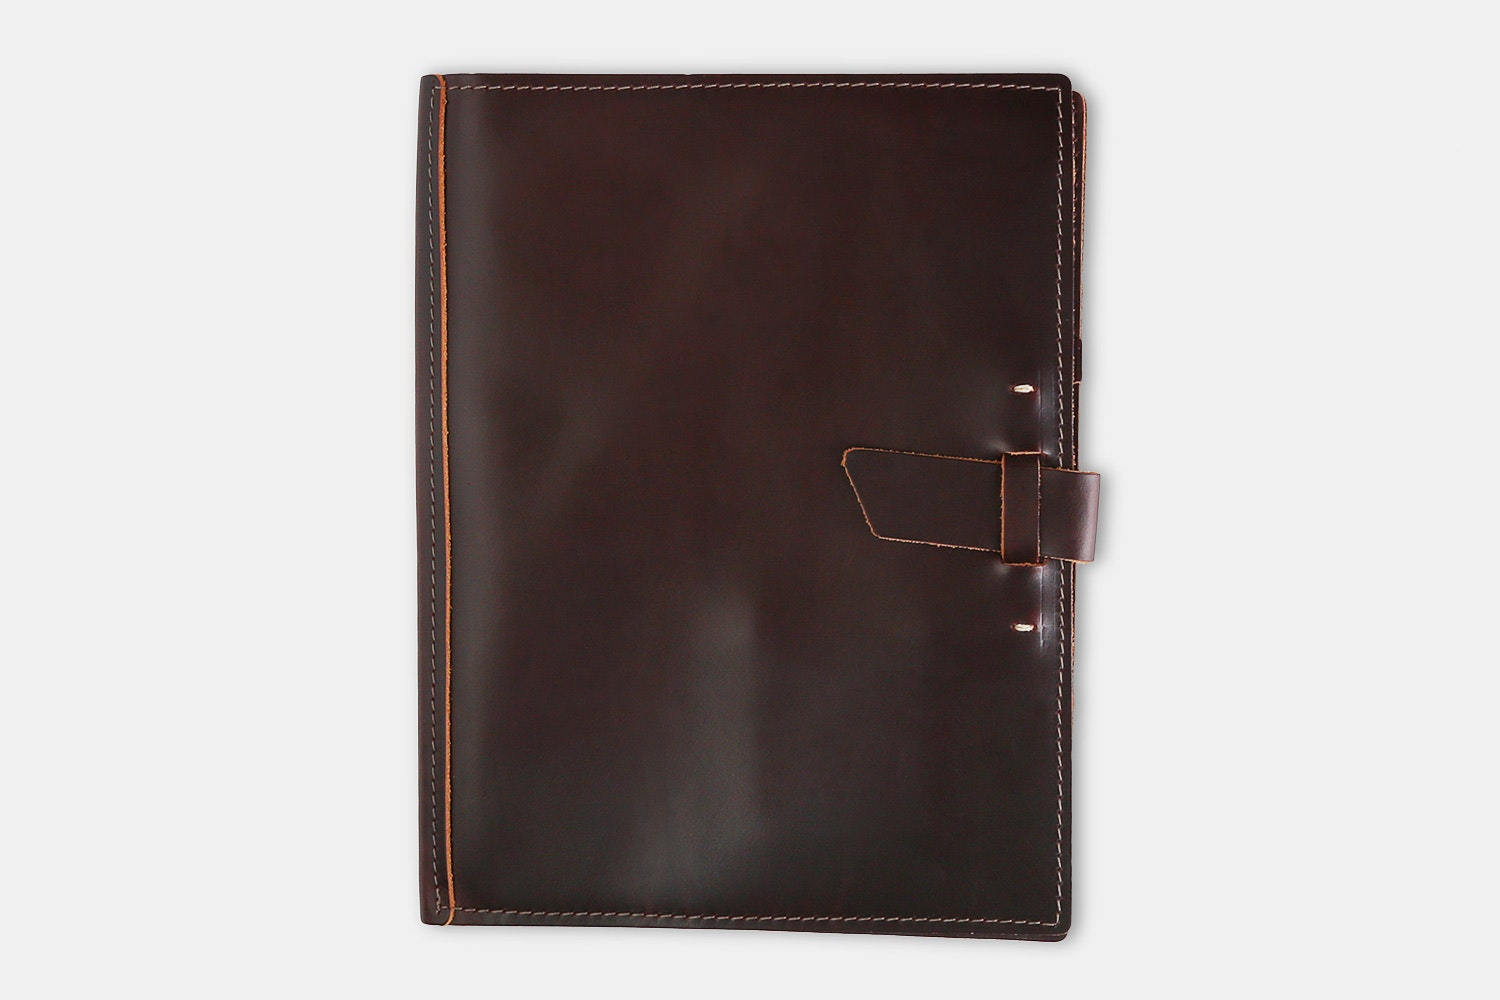 Large Leather Pad Portfolio (+ $70)